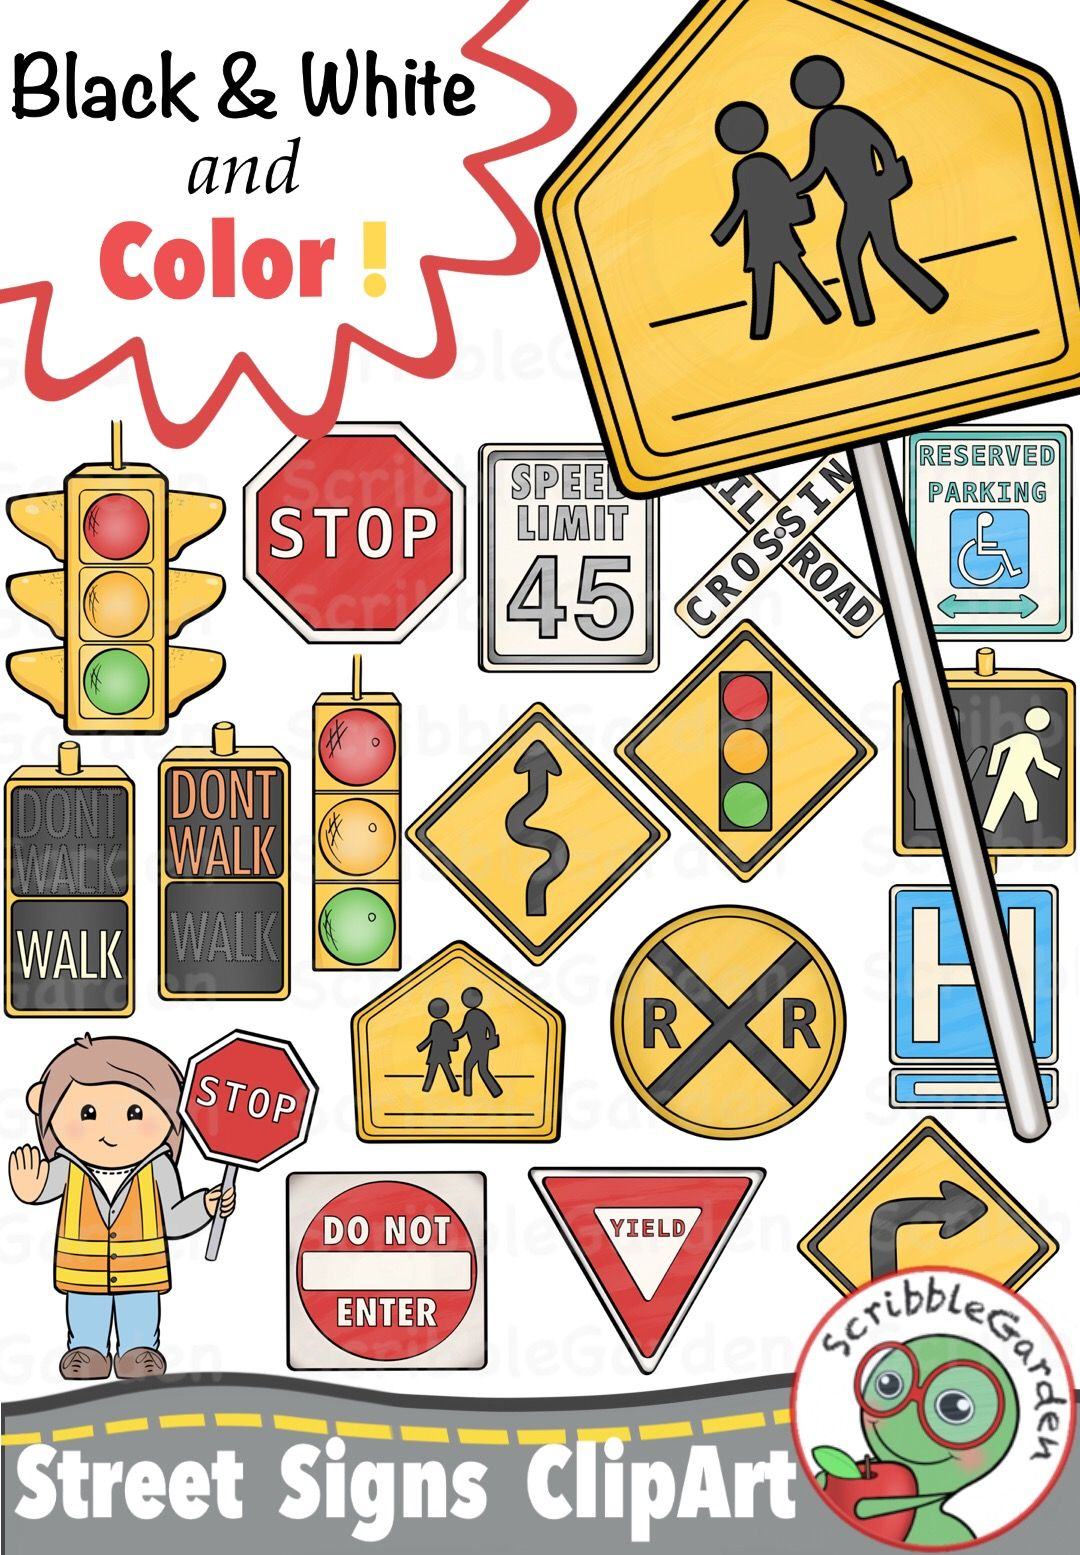 Road safety street signs clipart safety road safetystreet signs clipart pack by scribblegarden biocorpaavc Choice Image